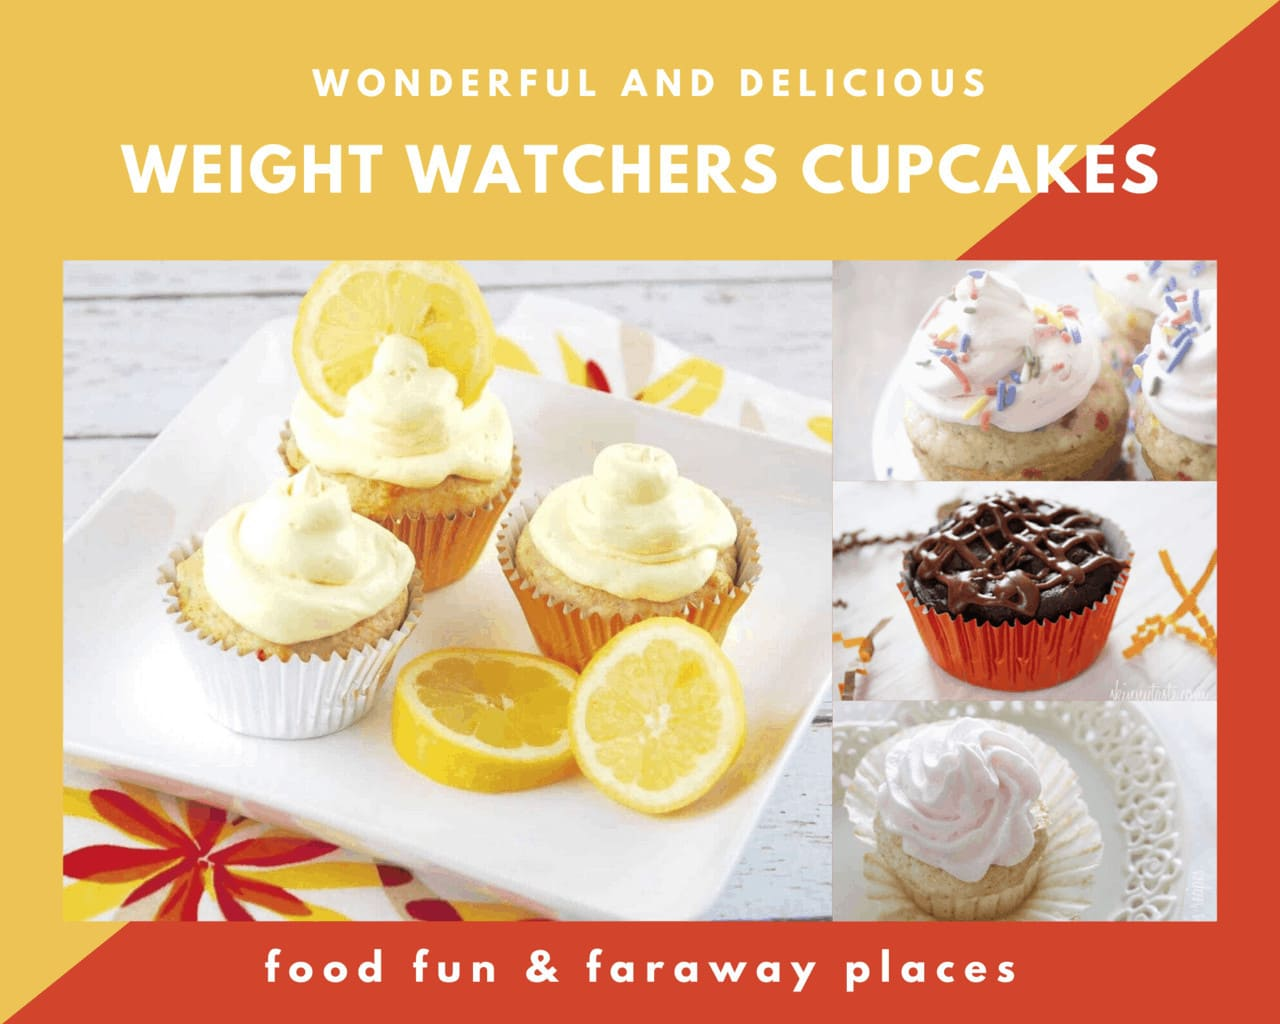 Just the words Weight Watchers Cupcakes seems a contradiction, doesn't it? How in the world can you eat cupcakes when you're trying to lose weight? You can!